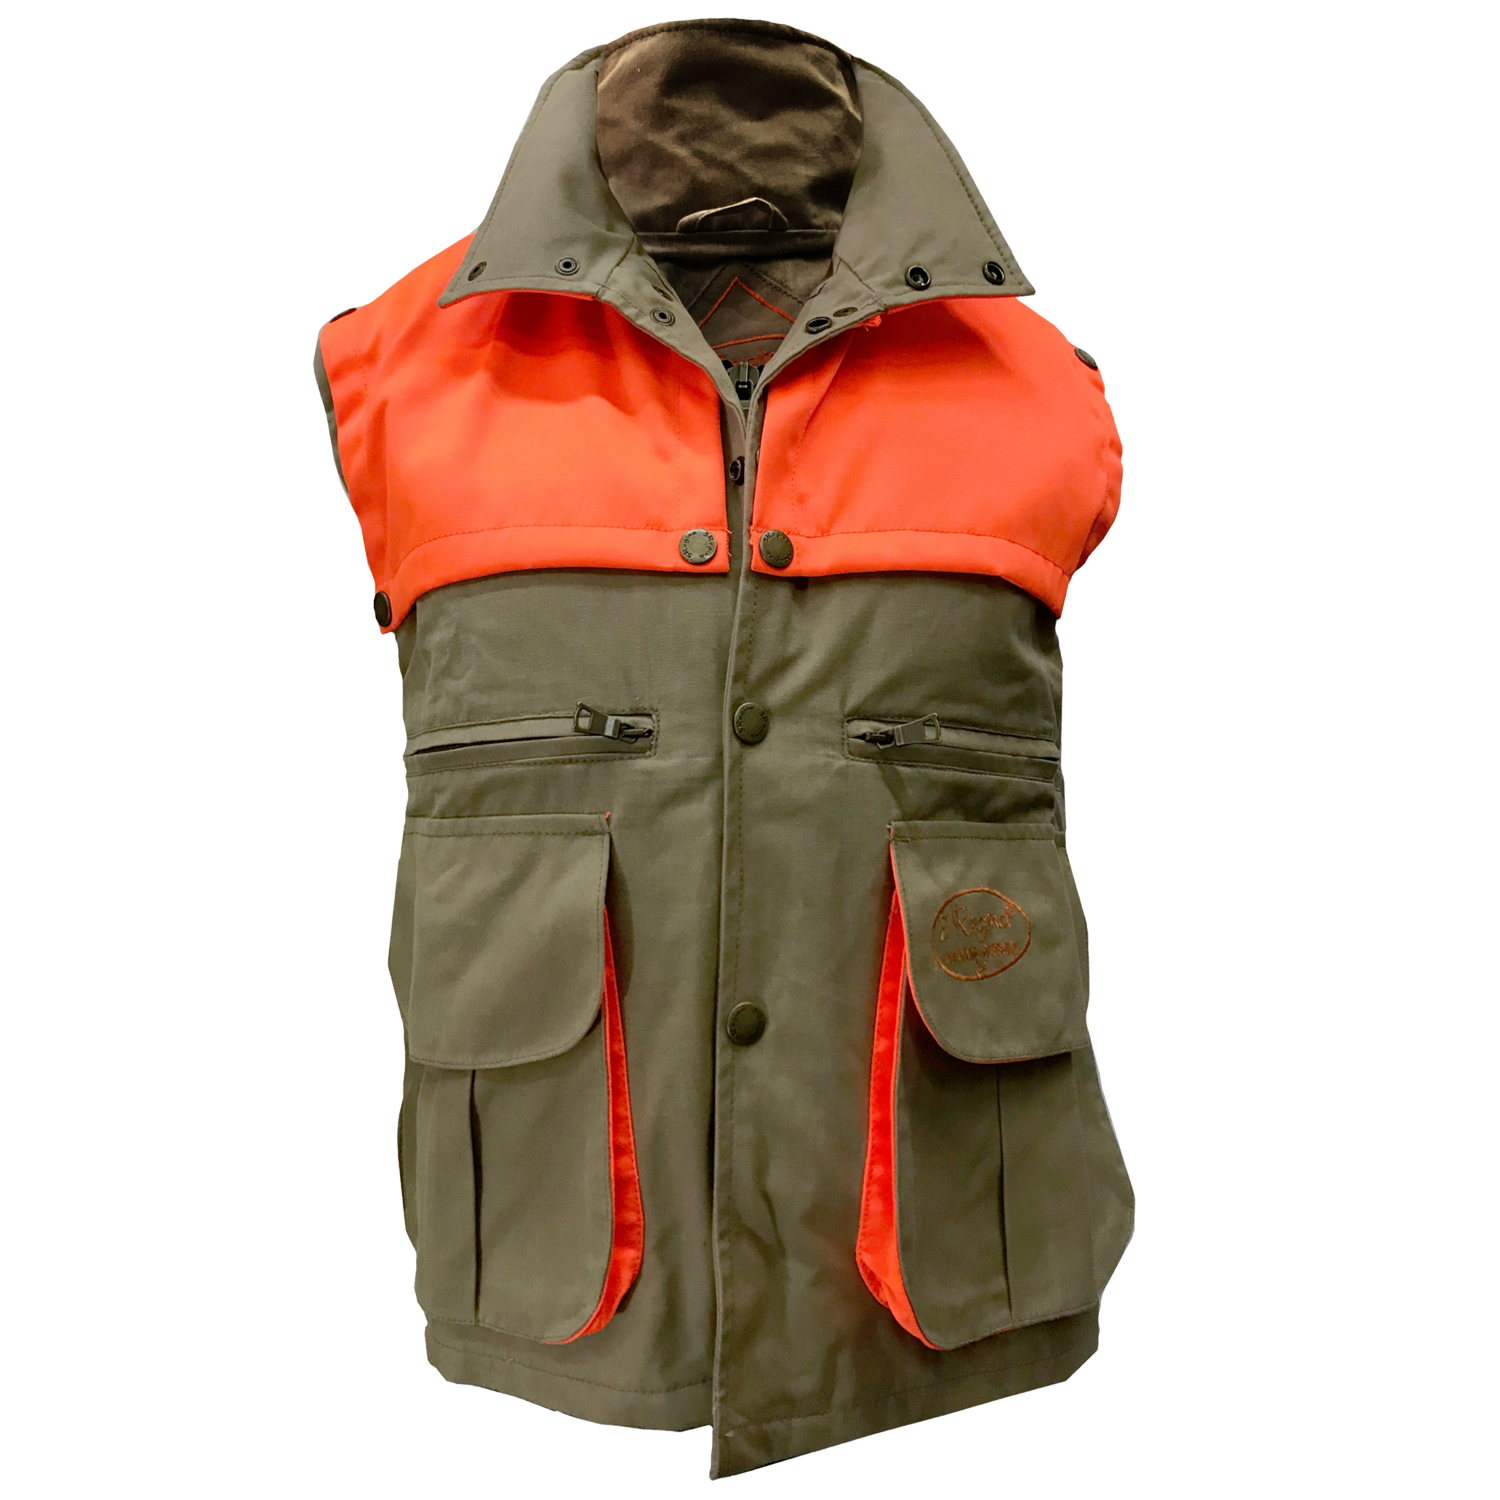 Sleeveless vest waxed hunting orange green pouch breathable cotton